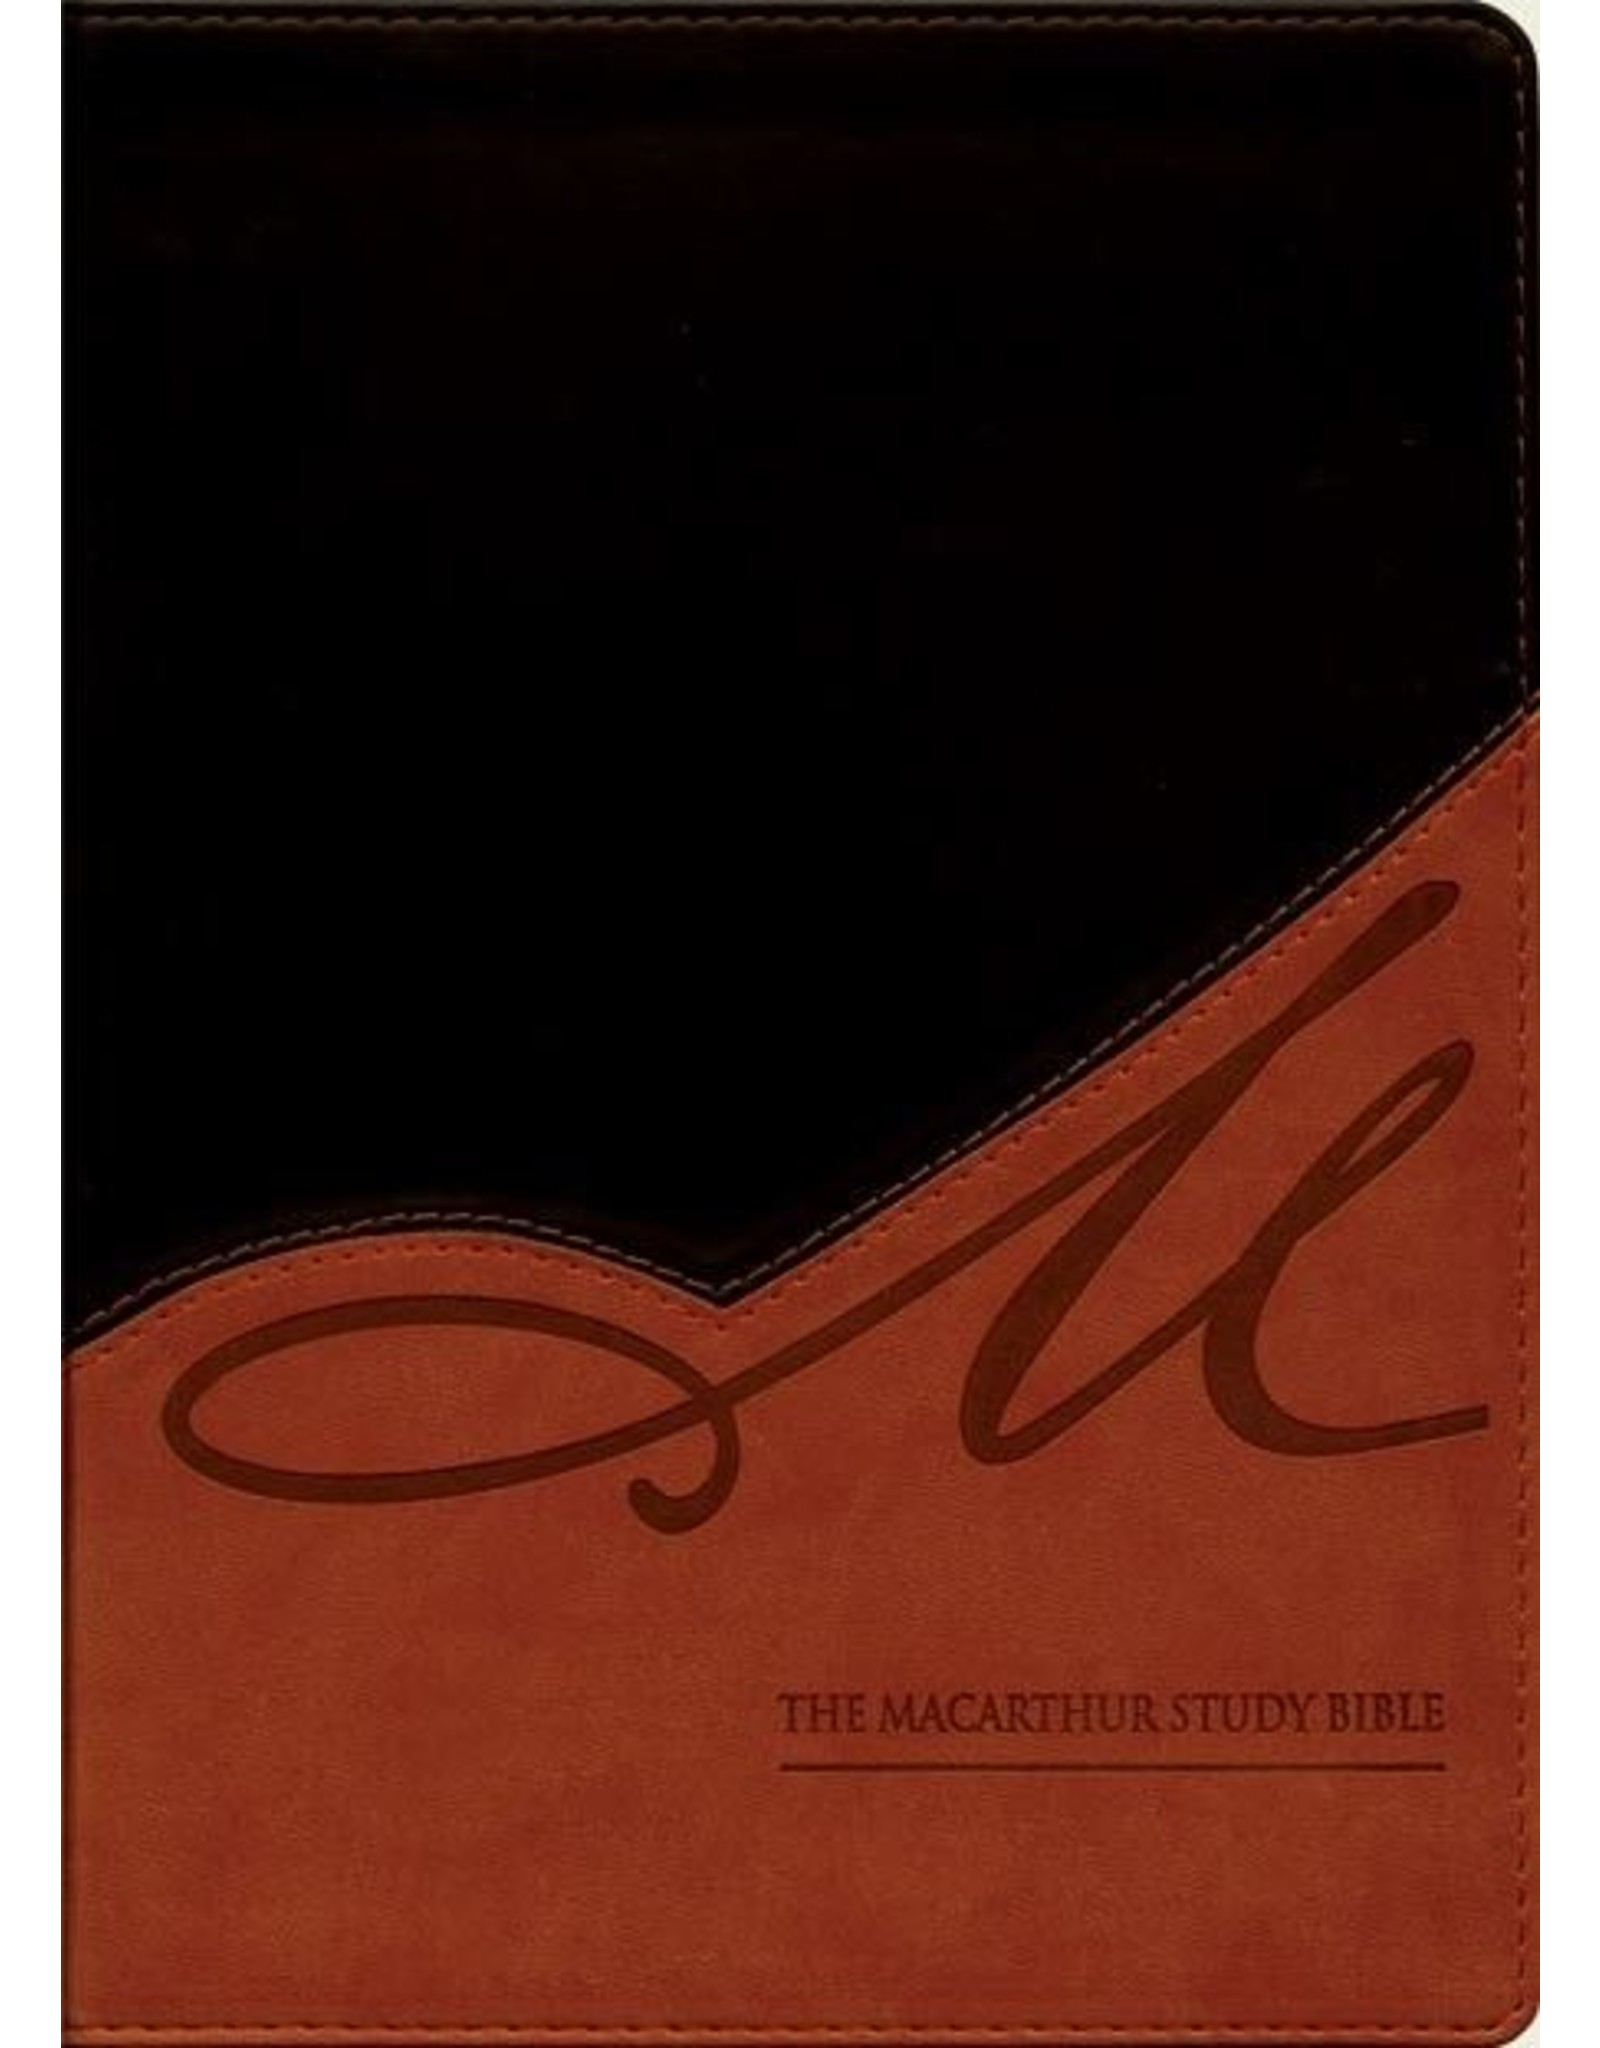 Harper Collins / Thomas Nelson / Zondervan MacArthur Study Bible: NASB Black/Terracota Indexed